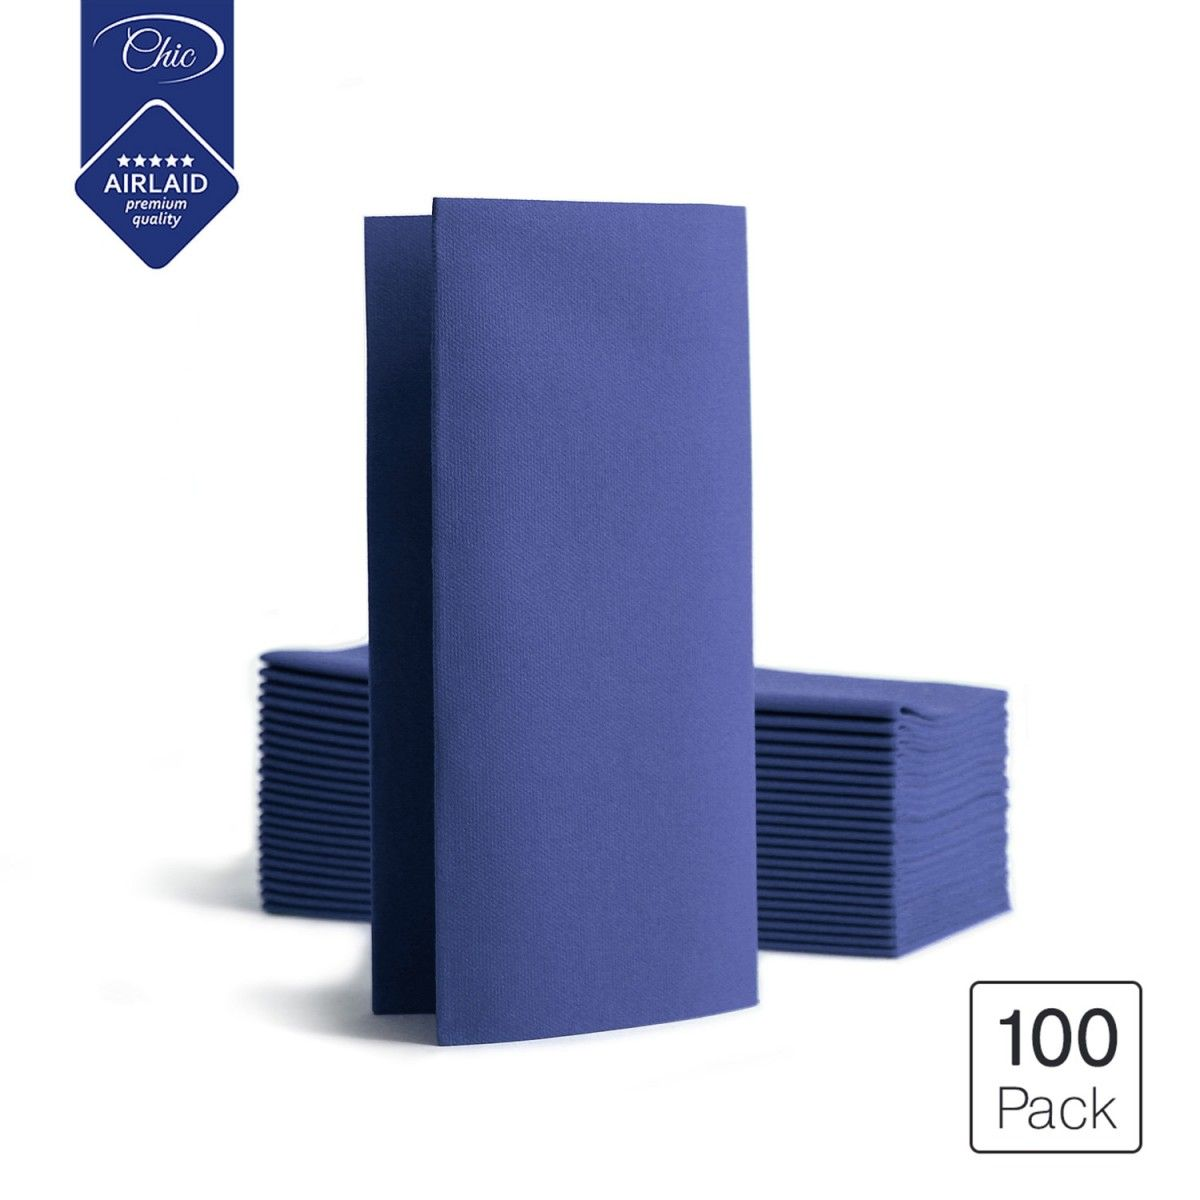 Seti Deluxe Folded Disposable Linen Feel Airlaid Dinner Party Paper Napkins Blue 100 Pack In 2020 Linen Feel Decorative Paper Napkins Party Paper